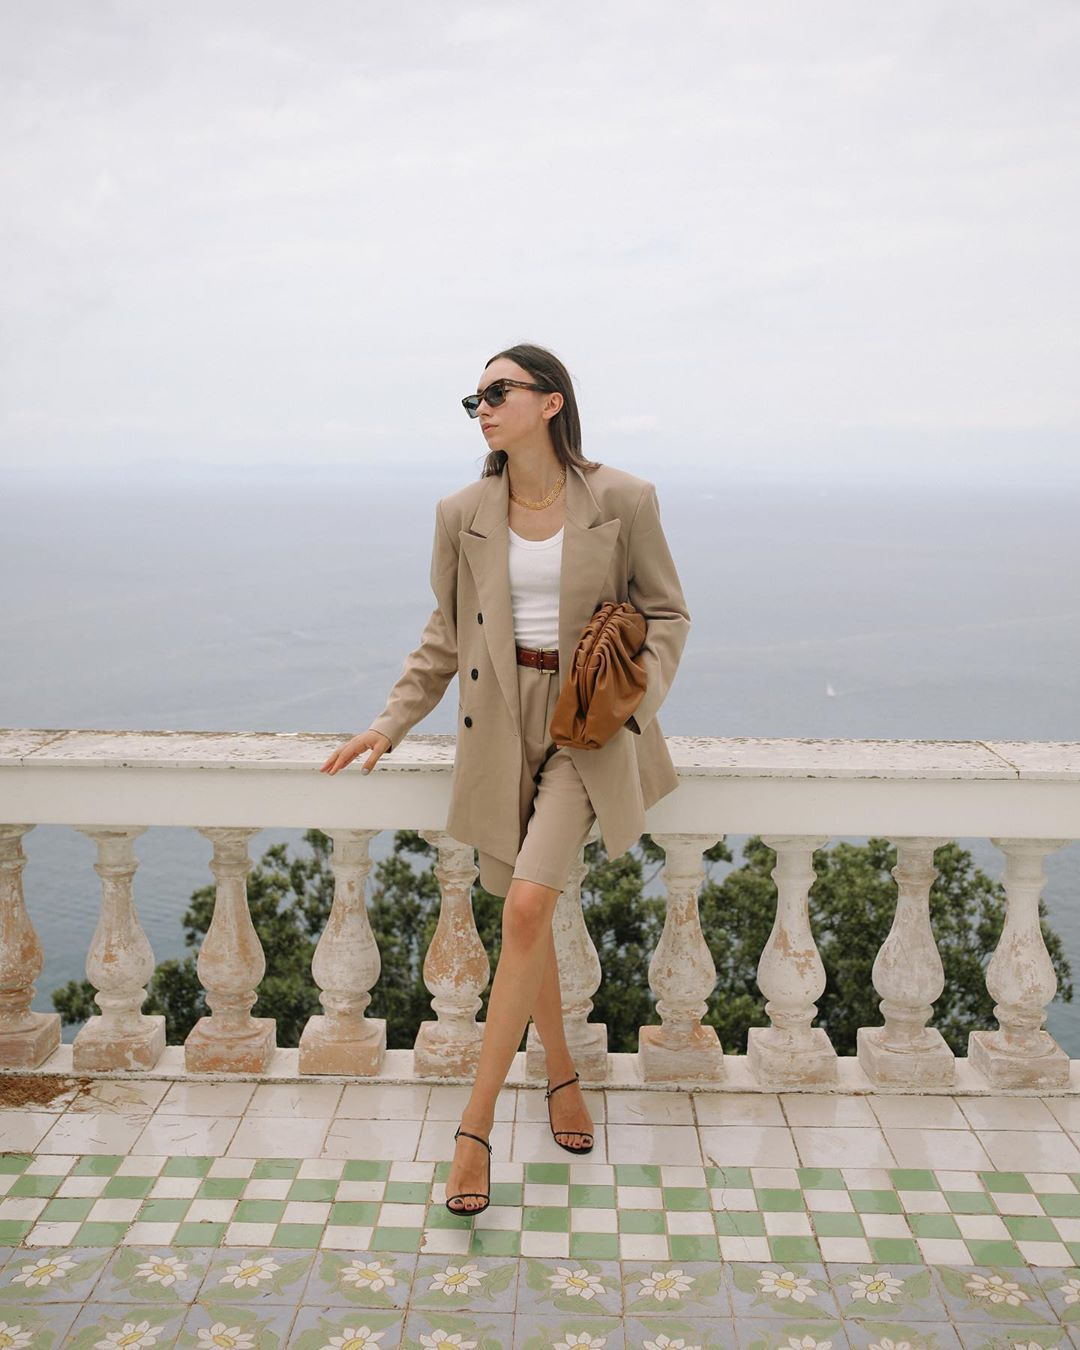 beatrice-gutu-frankie-shop-blazer-shorts